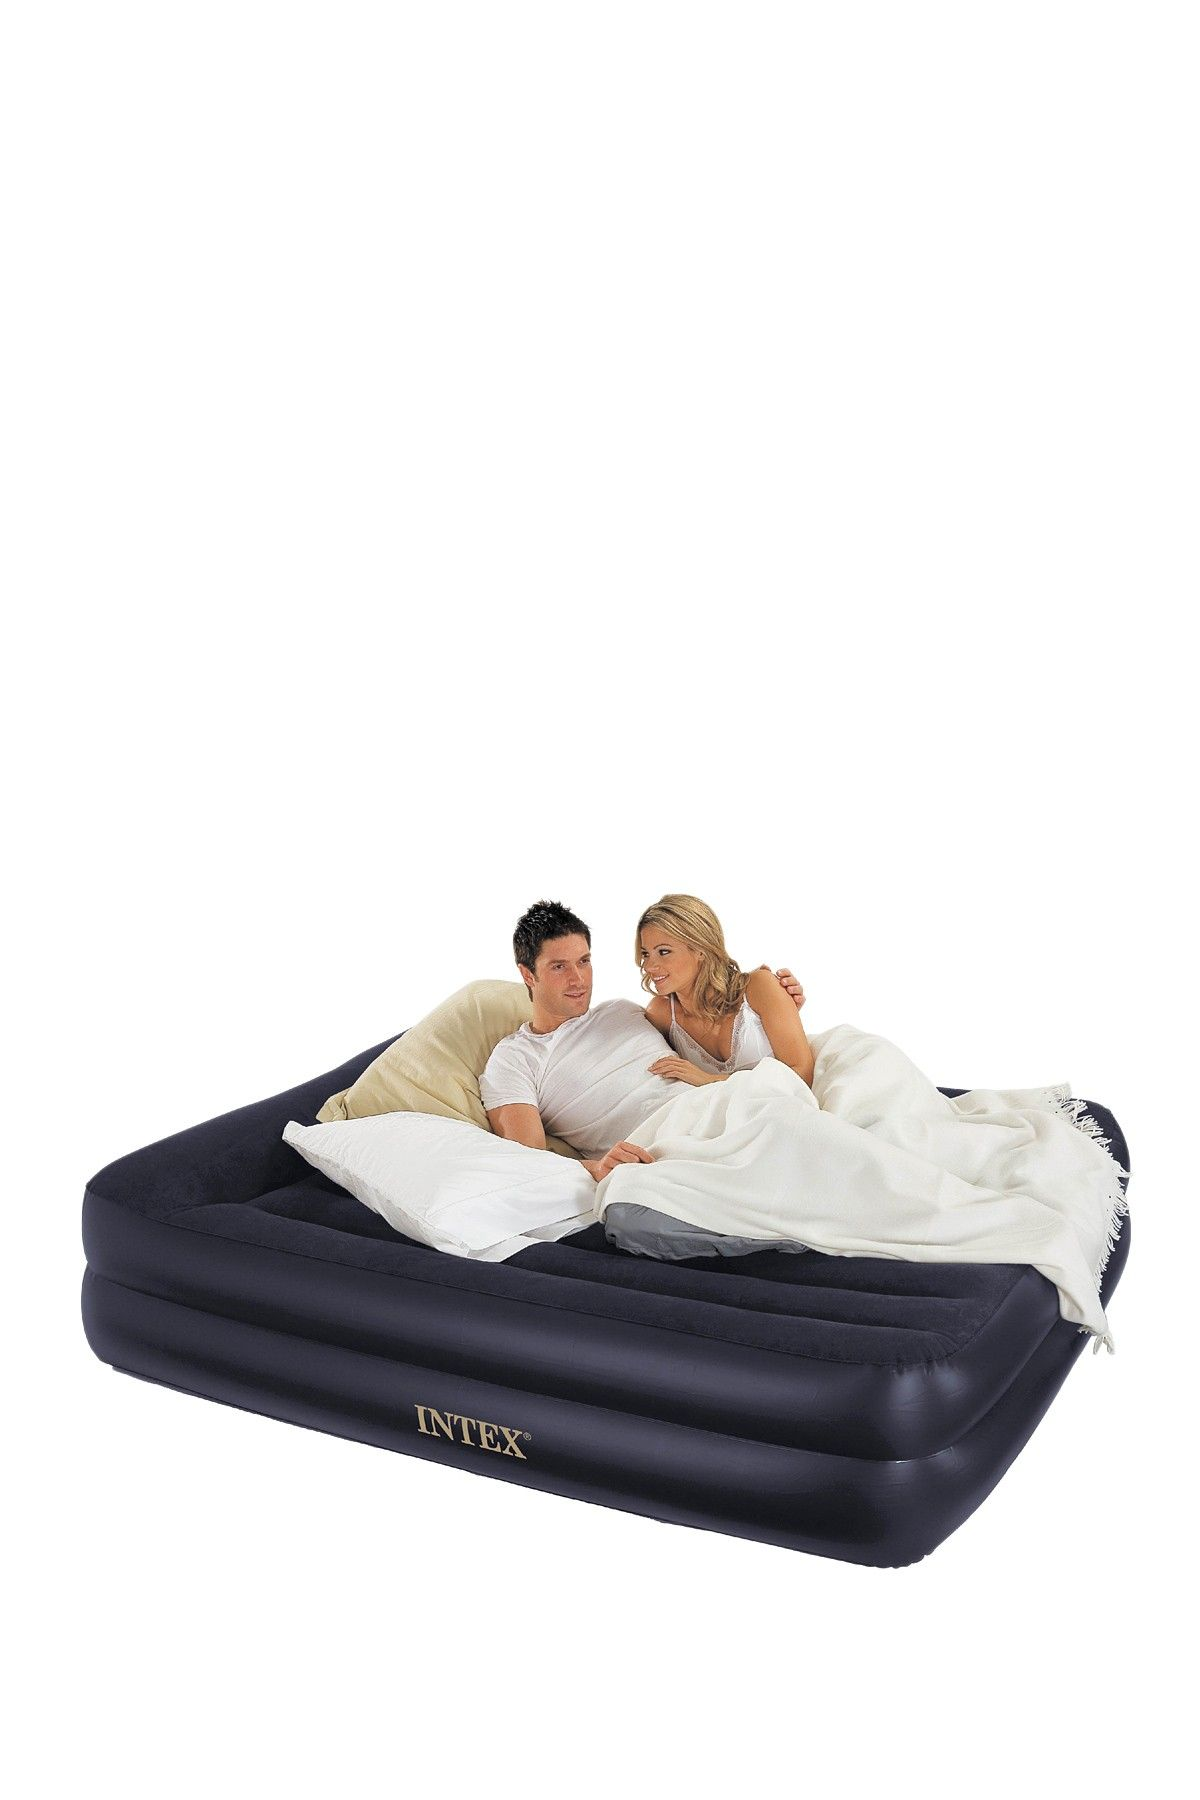 intex air mattress on air mattress for surprise guests queen airbed kit 55 air bed inflatable bed bed mattress queen airbed kit 55 air bed